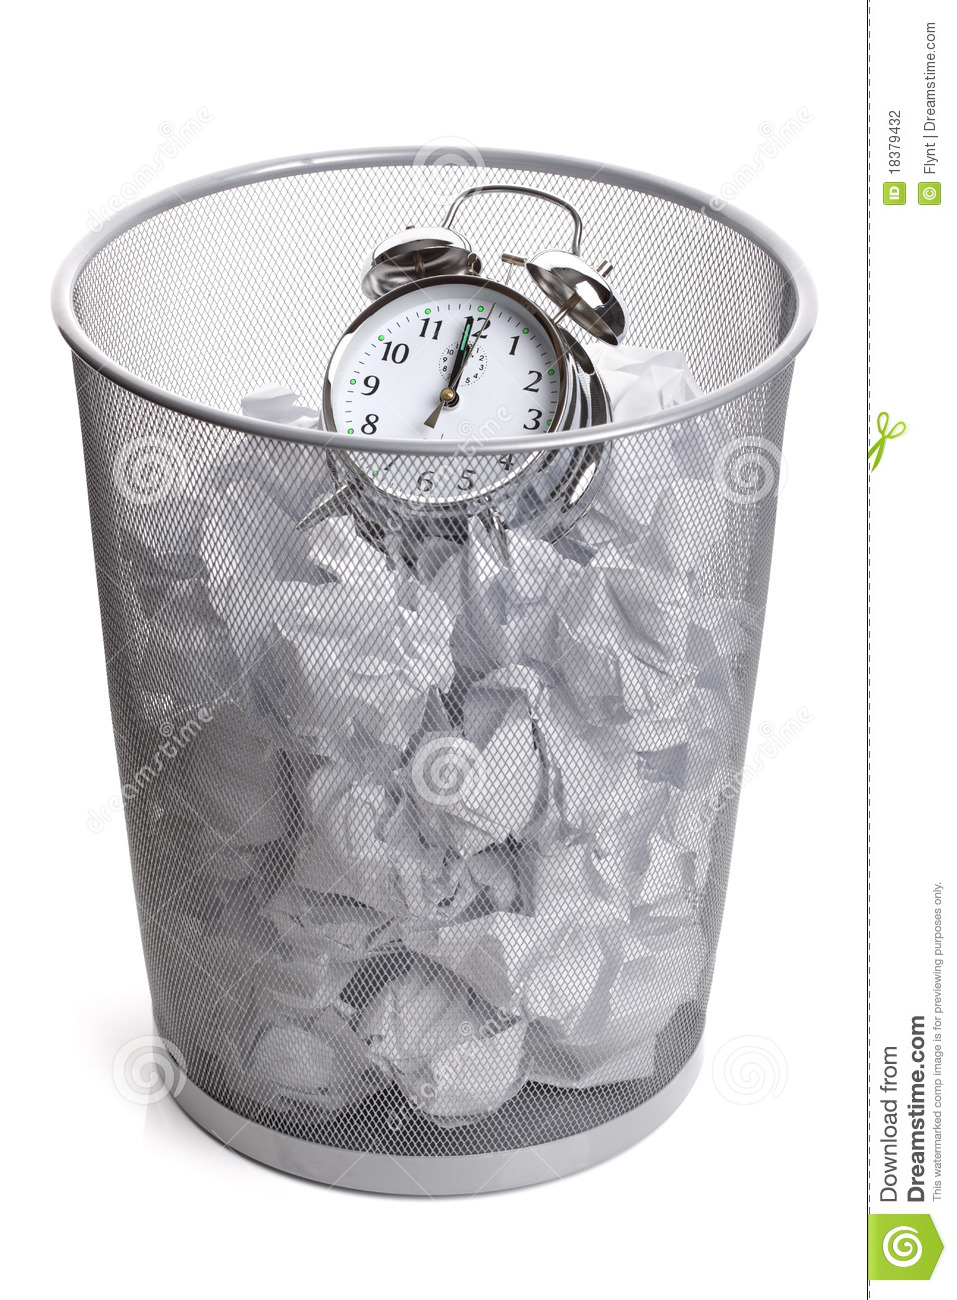 Wasting Time Stock Photography Image 18379432